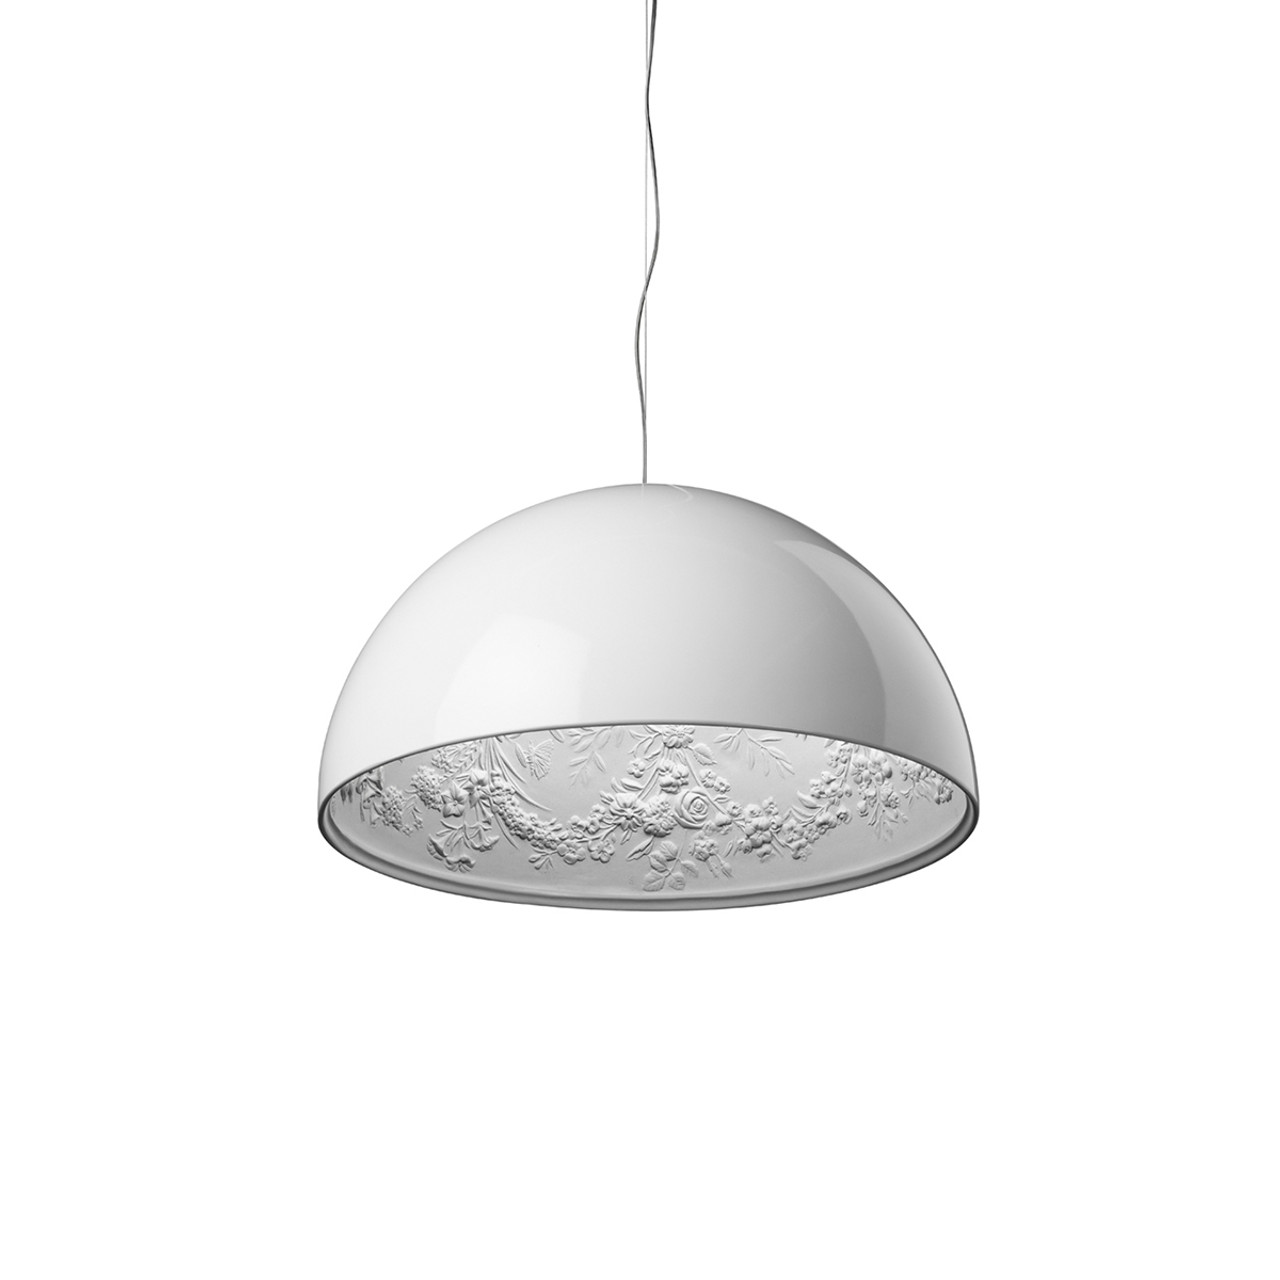 Hanging Lamp Skygarden S Pendant Dimmable Light In White Black Brown Or Gold